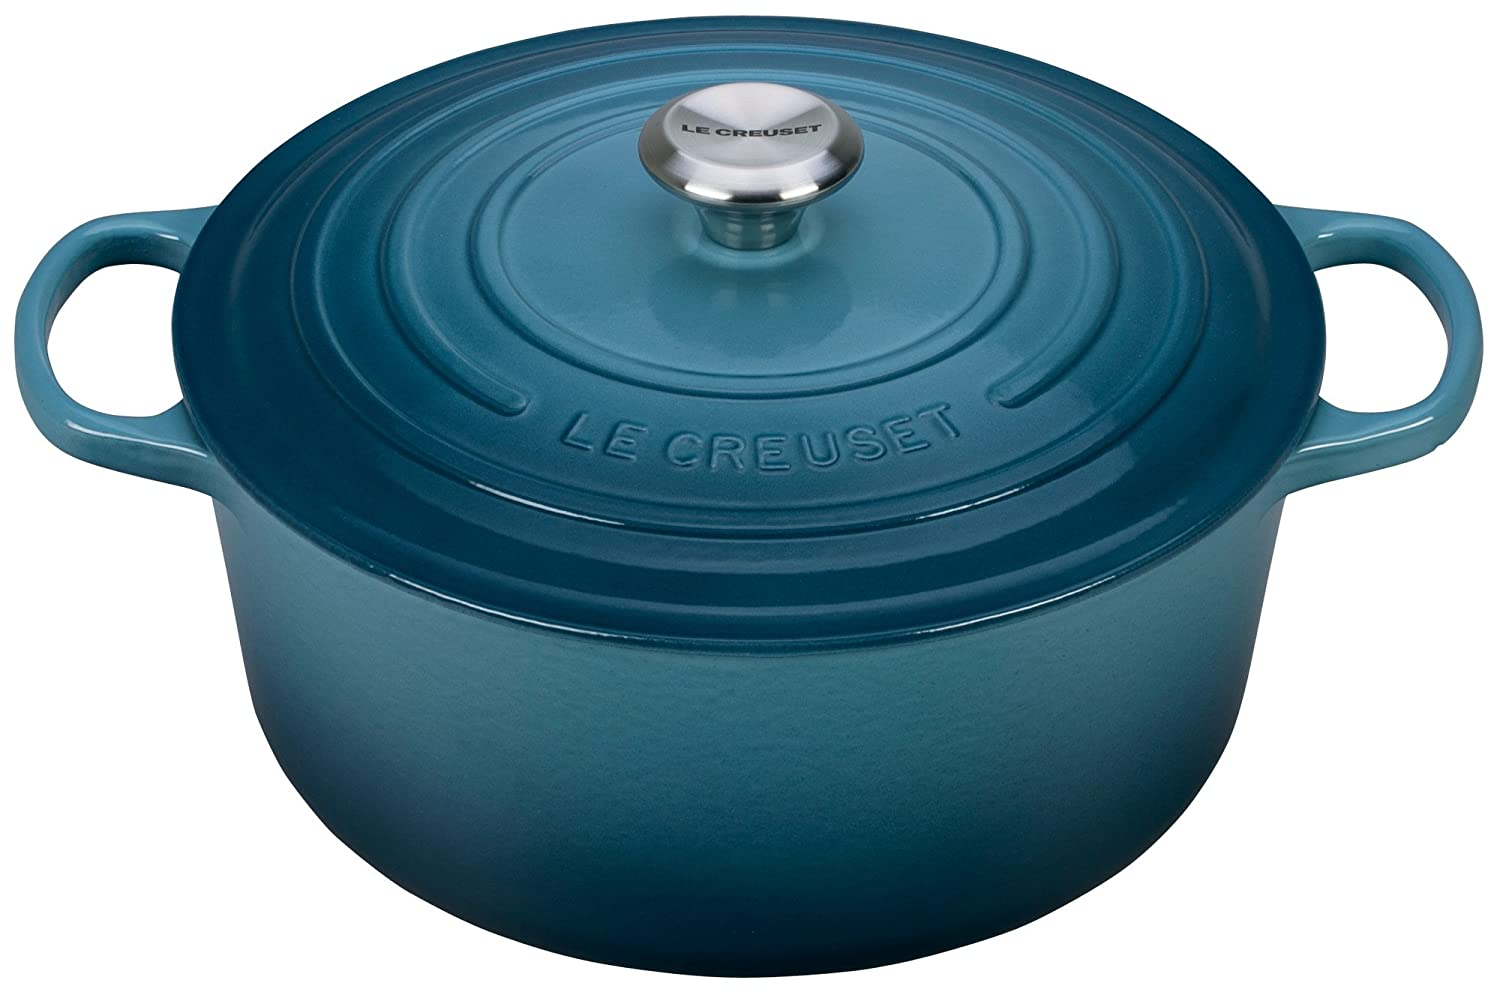 Le Creuset Signature Enameled Cast-Iron 7-1/4-Quart Round French (Dutch) Oven, Marine